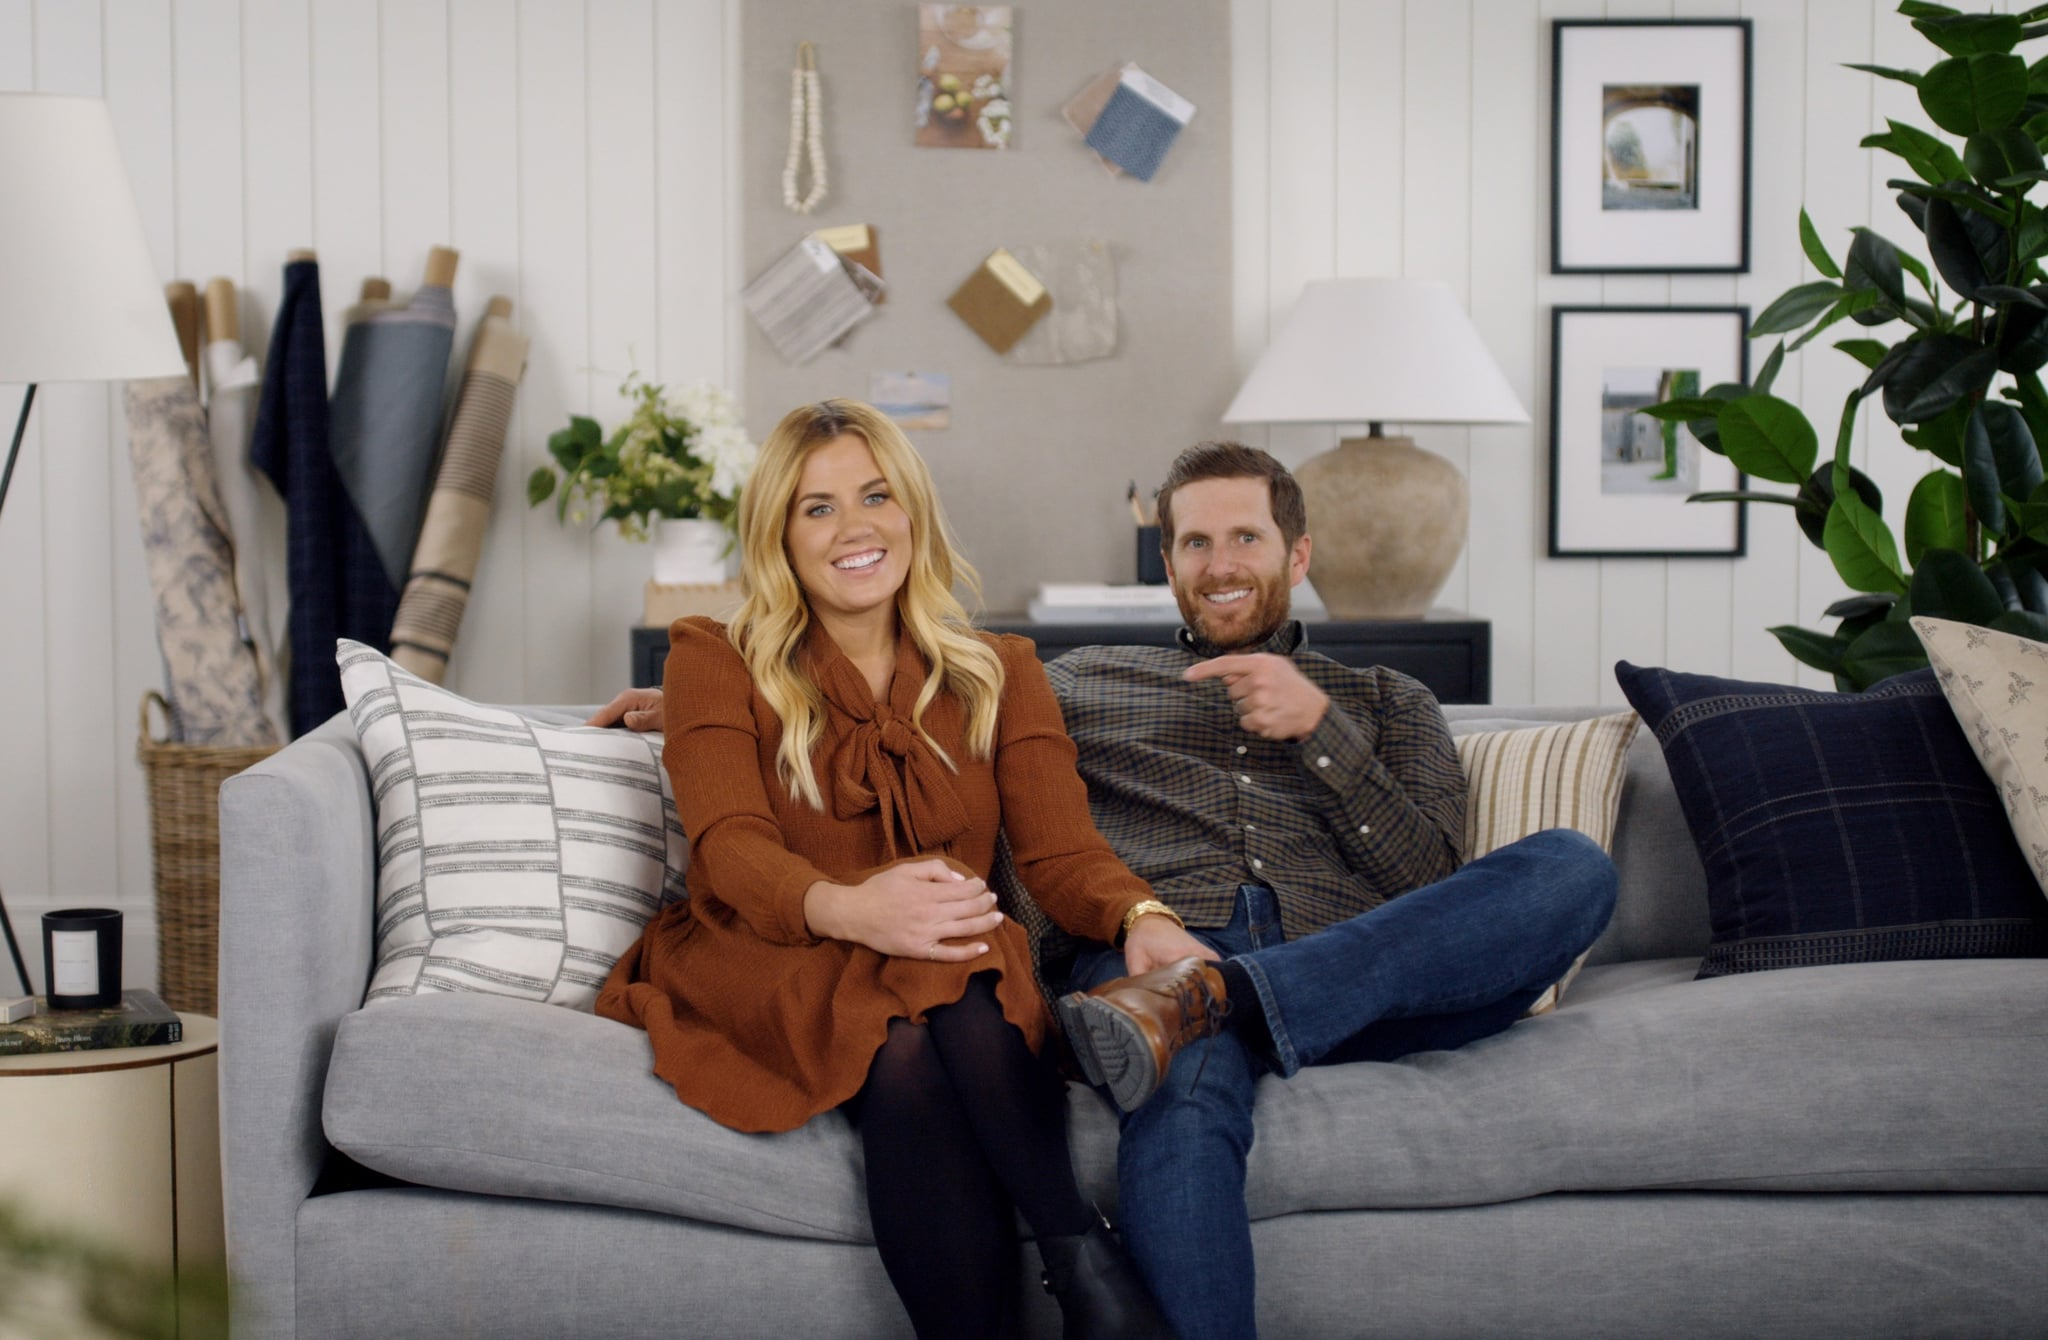 DREAM HOME MAKEOVER, from left: Shea McGee, Syd McGee, (Season 1, ep. 102, aired Oct. 16, 2020). photo: Netflix / Courtesy Everett Collection